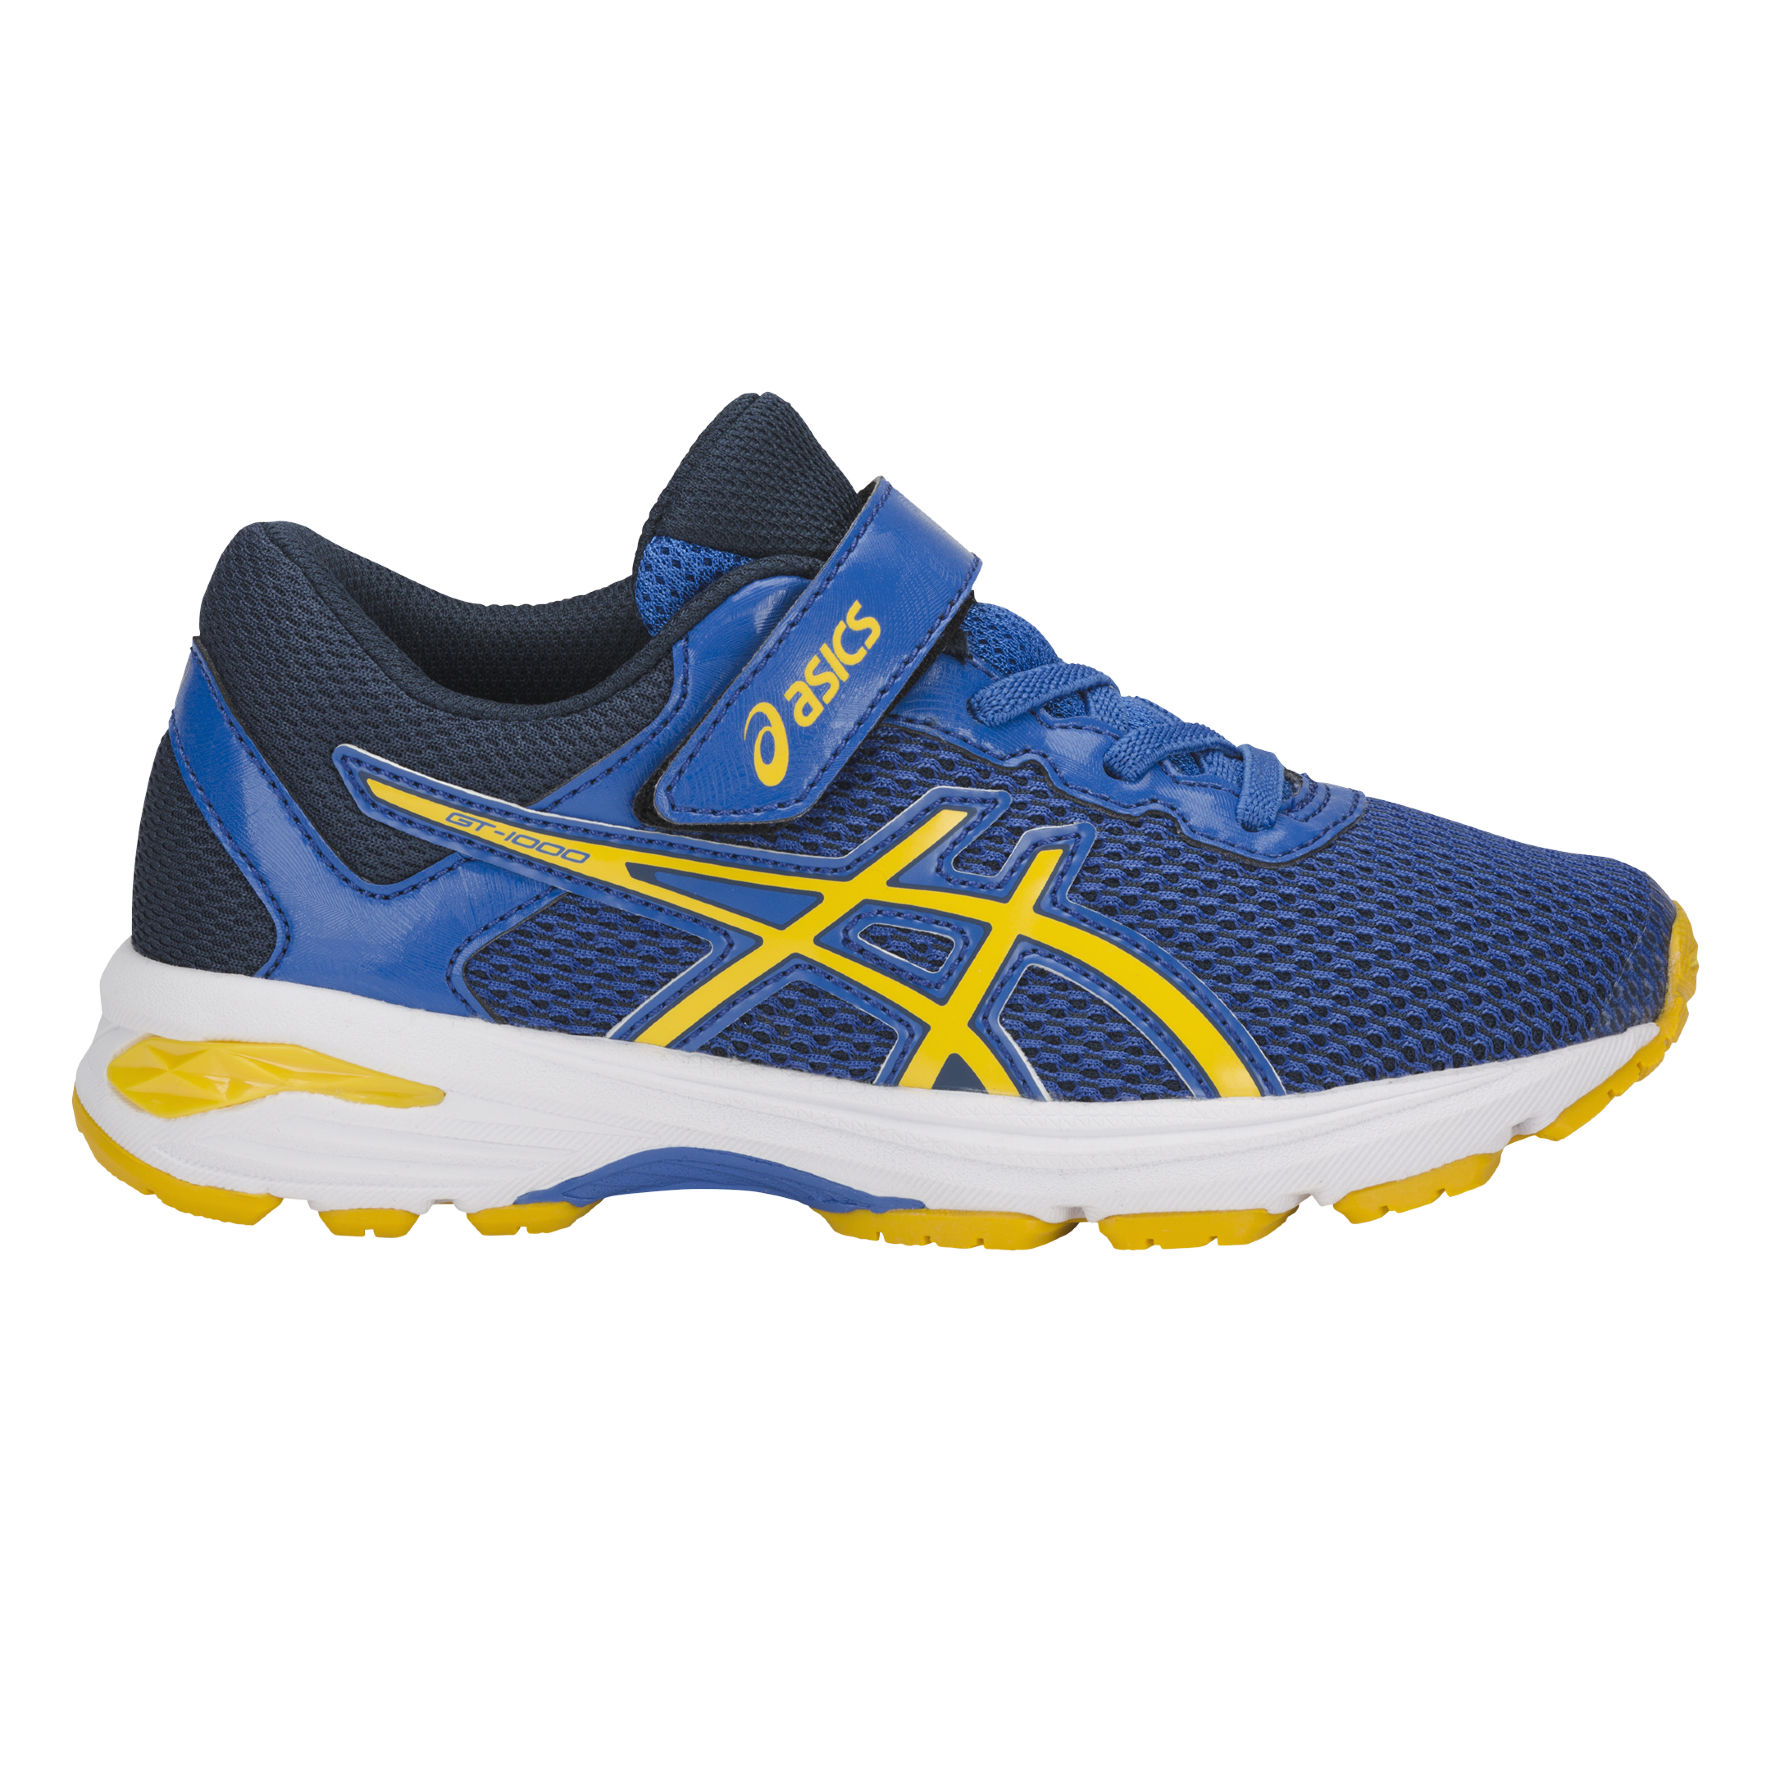 Asics GT-1000 6 PS in Blau Gelb